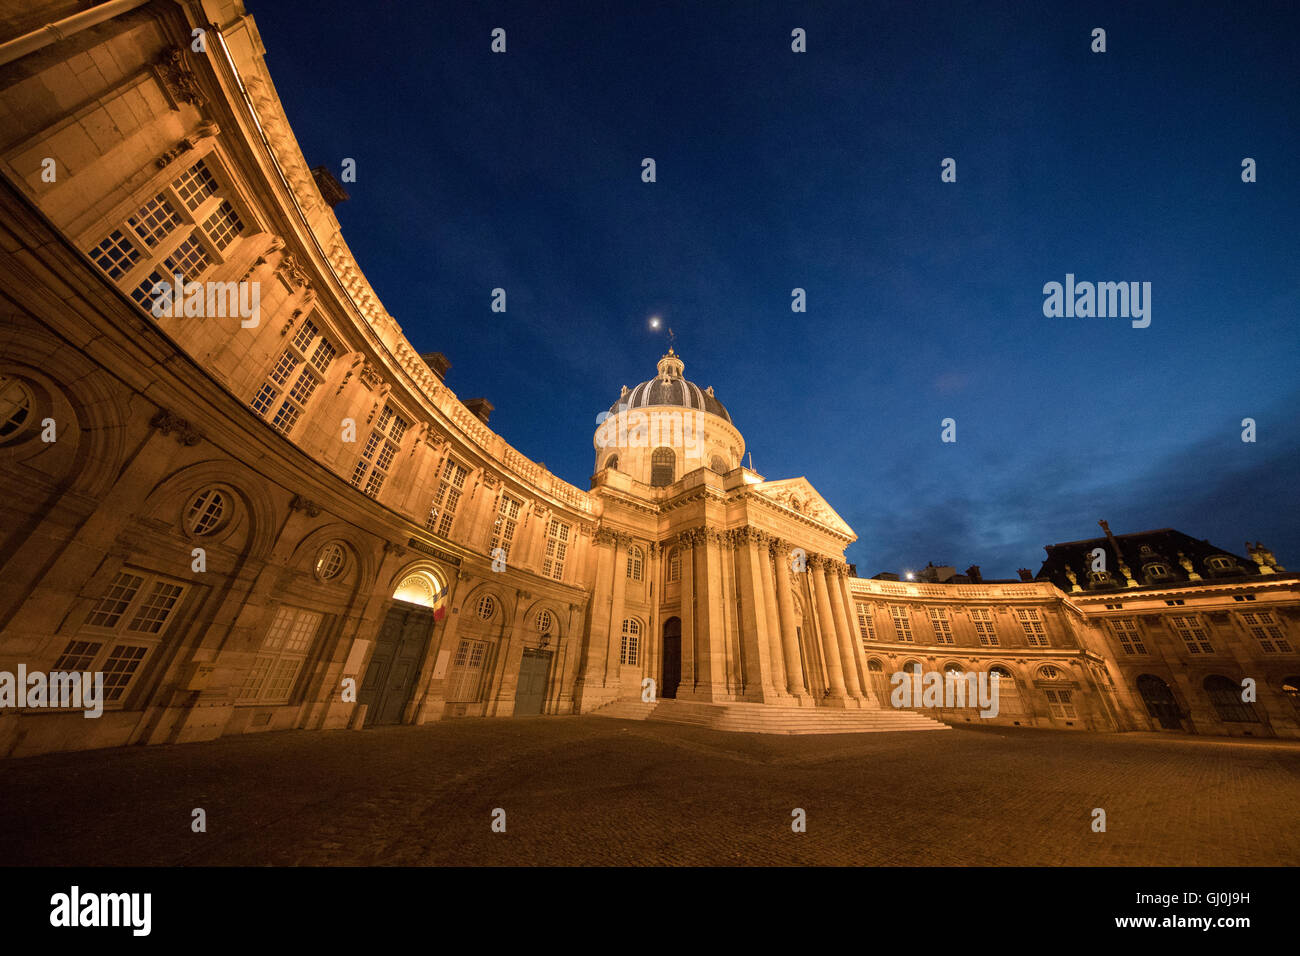 L'Acadamie des Beaux-Arts, Institut de France, Paris, France Photo Stock